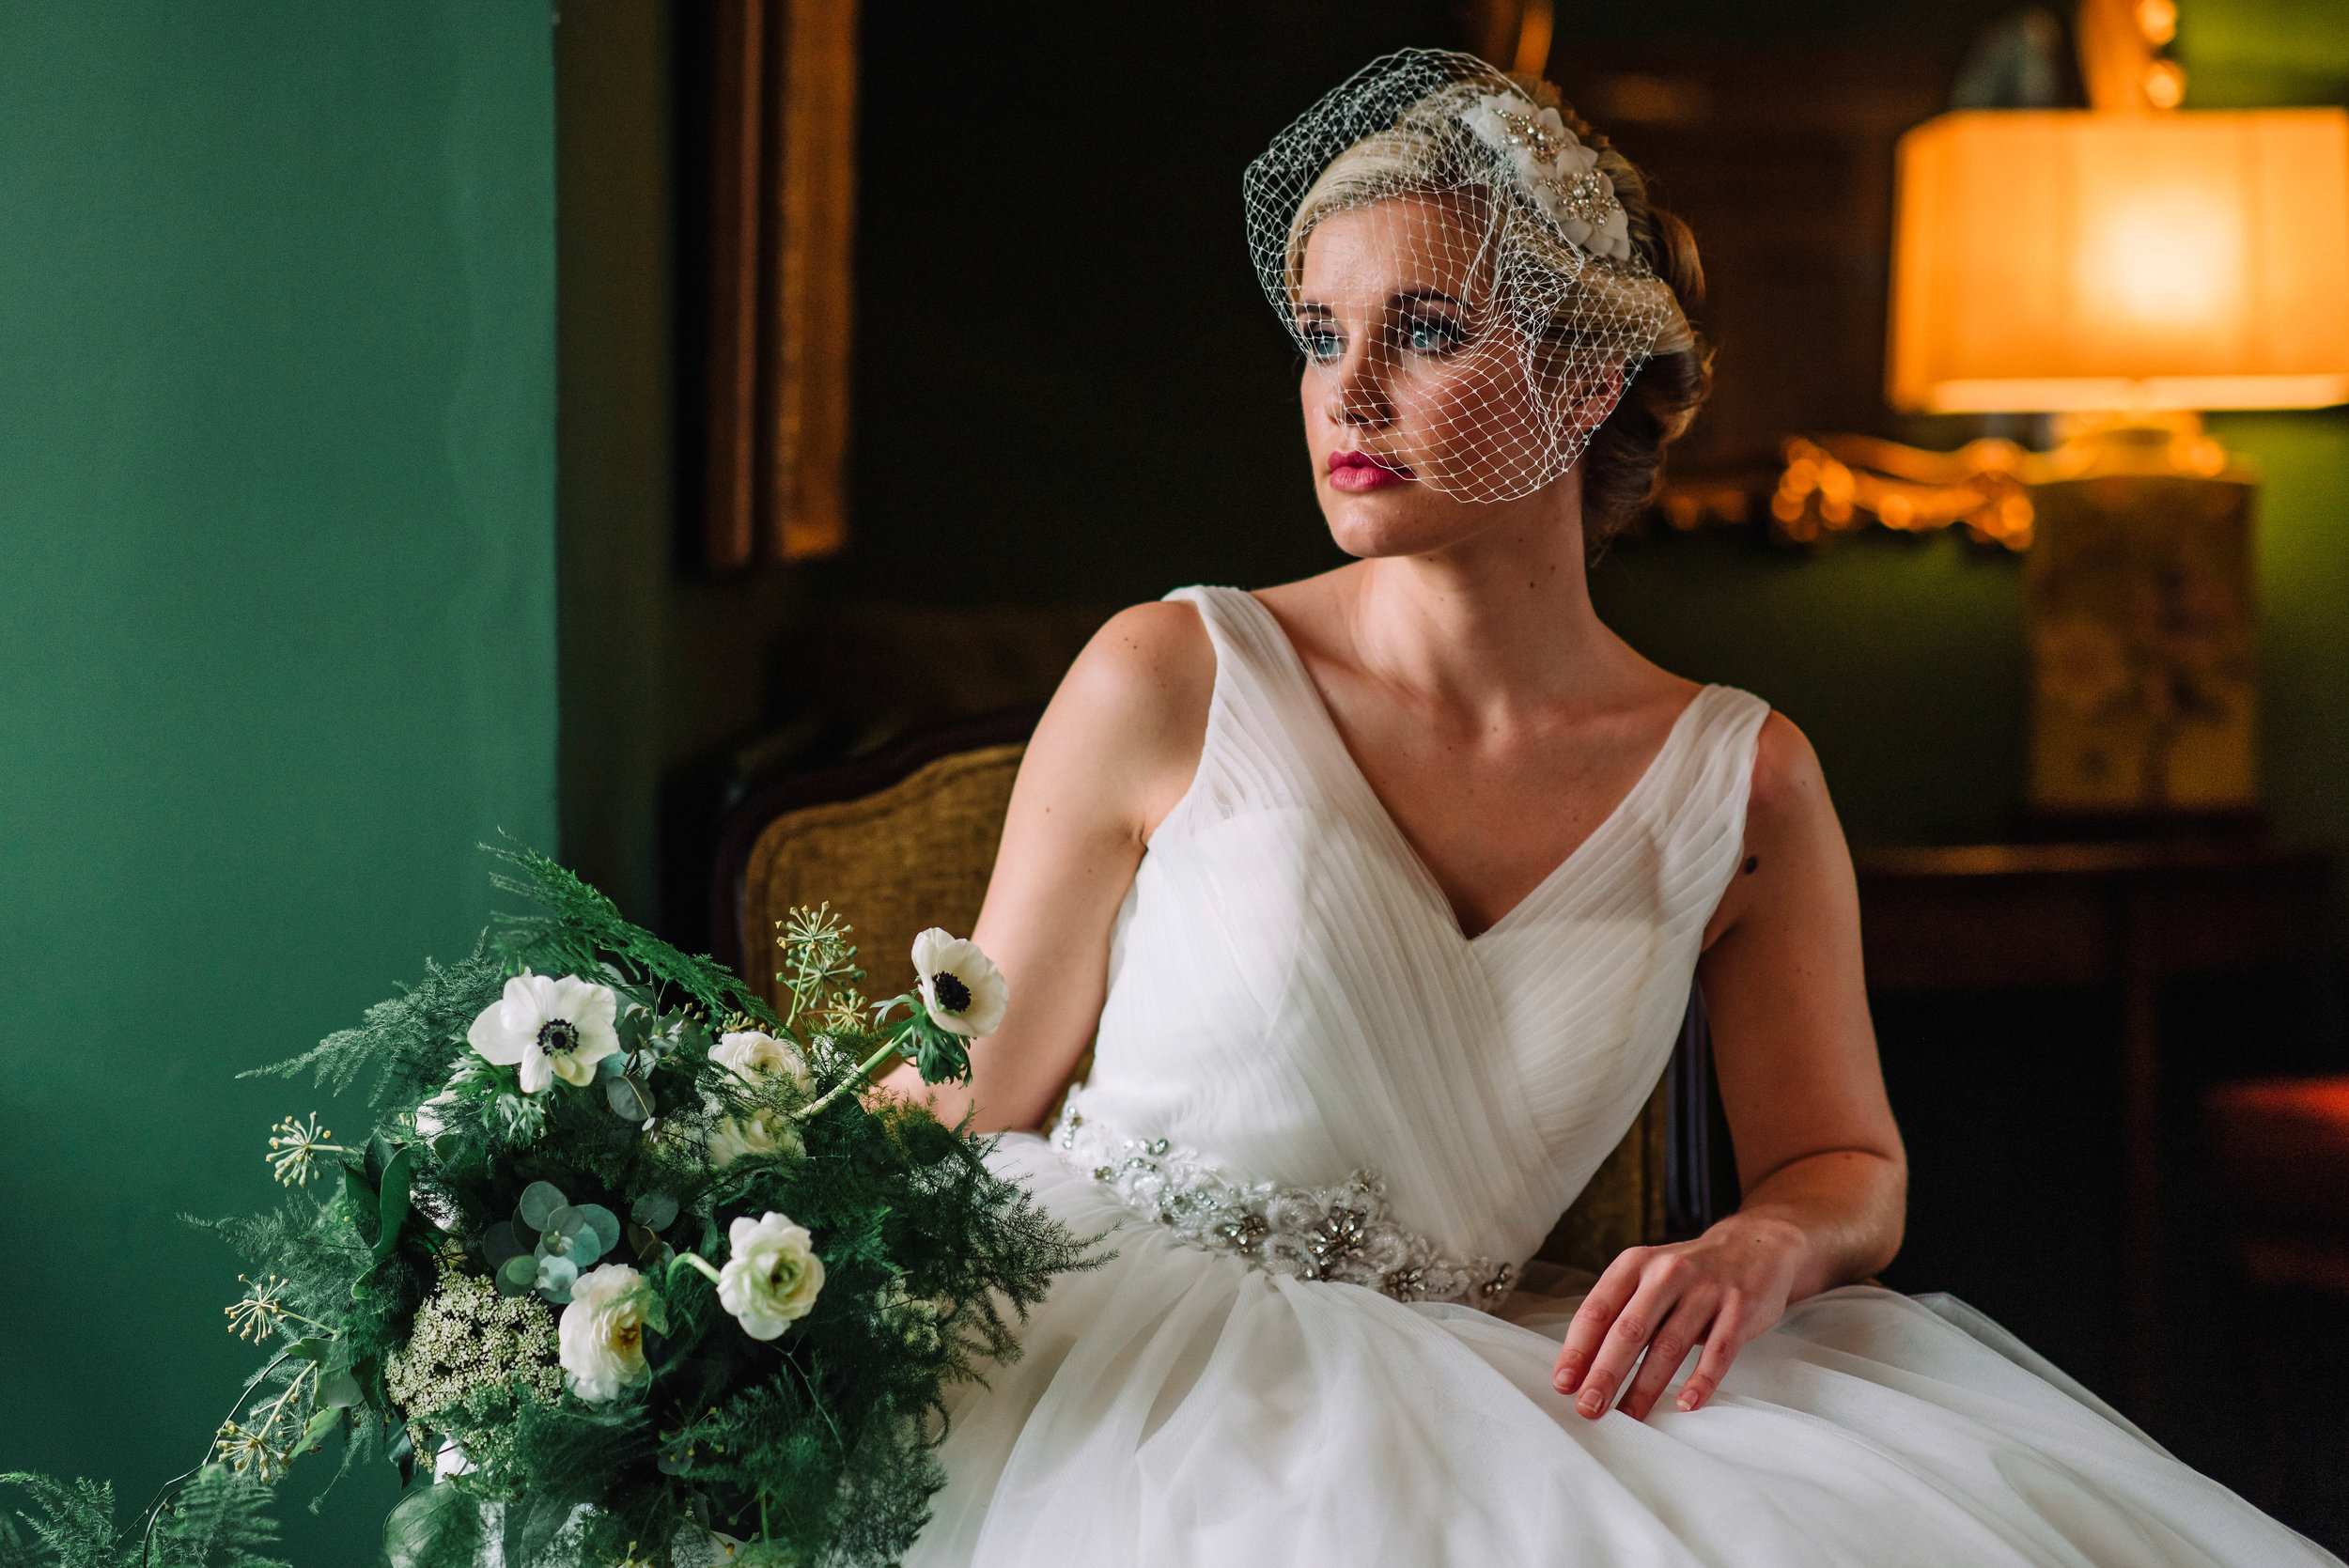 Bride sitting in chair holding a bouquet of flowers and wearing a white wedding dress